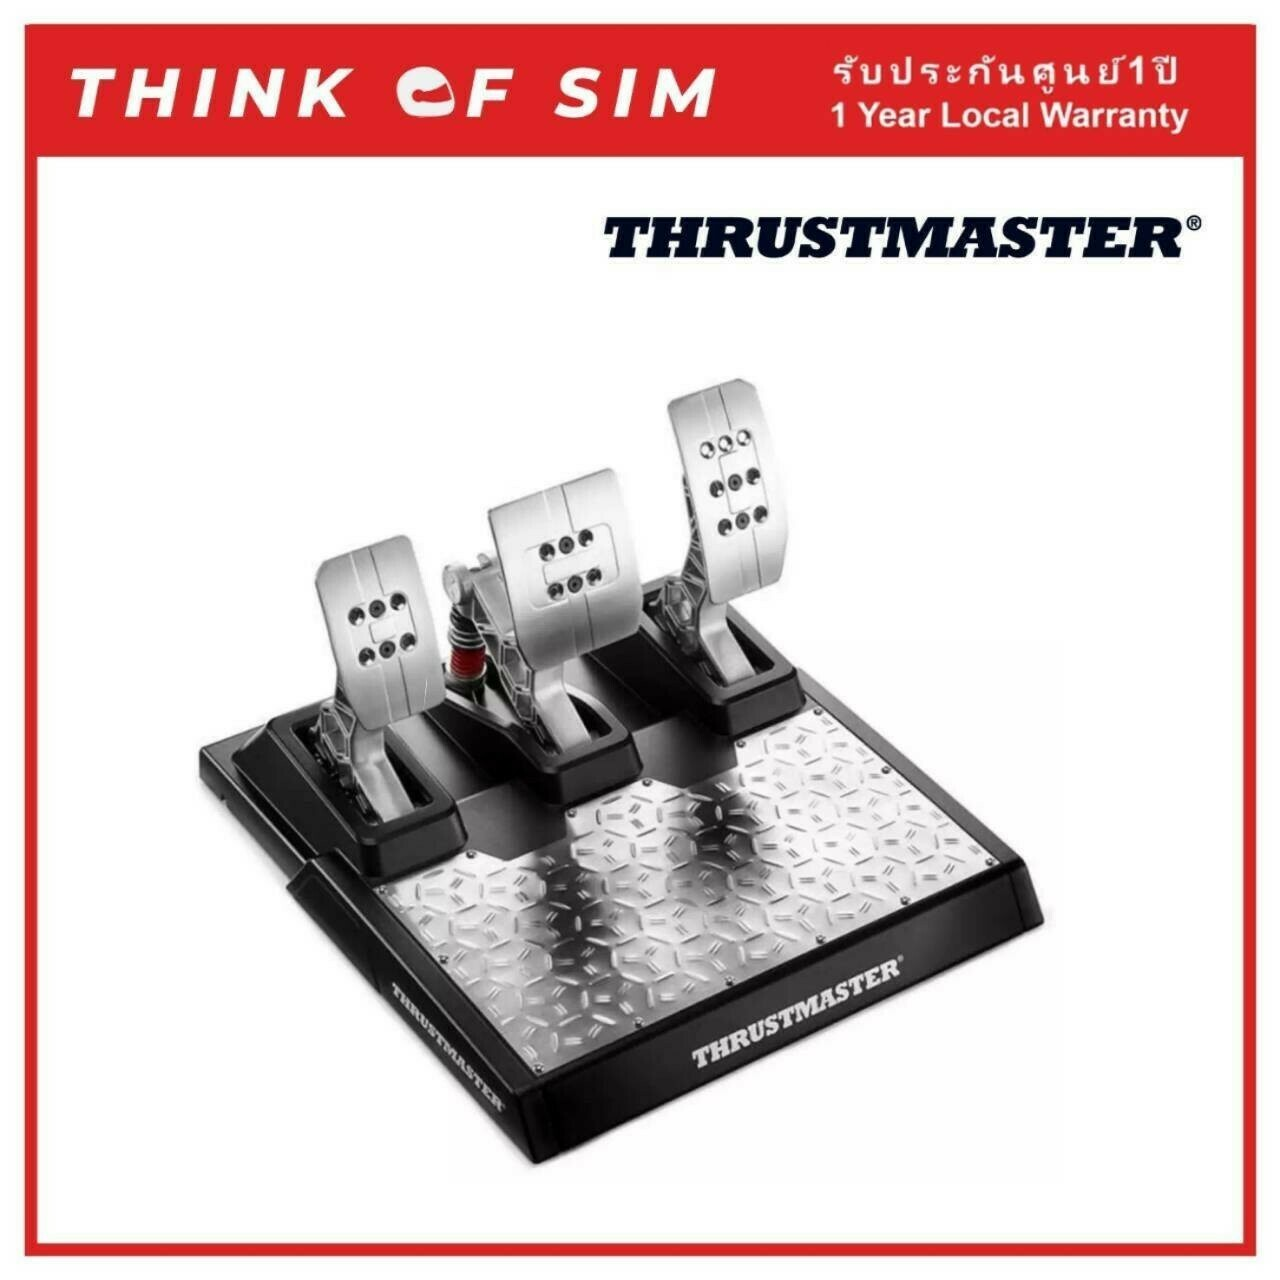 Thrustmaster T-LCM Pedals with Loadcell For Sim Racing